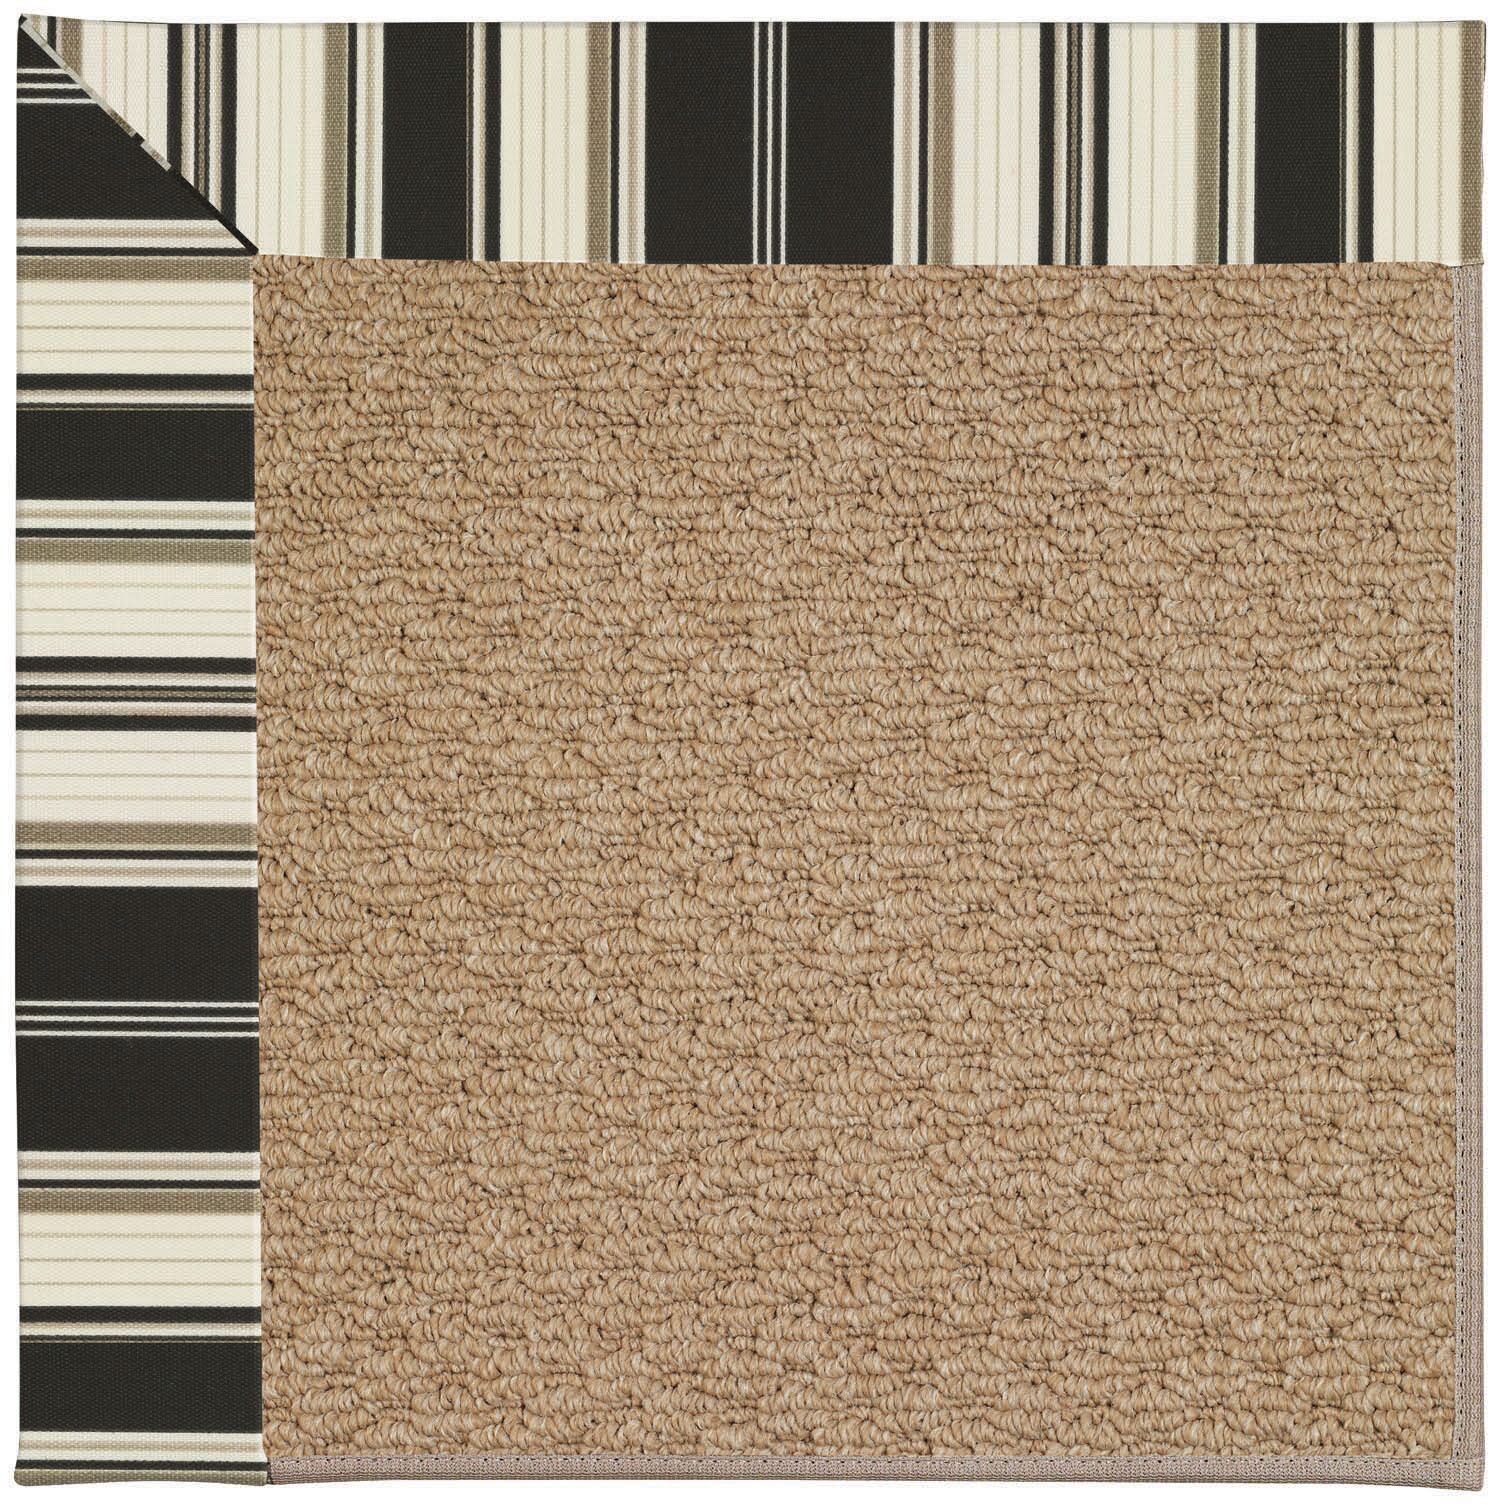 Lisle Machine Tufted Onyx/Brown Indoor/Outdoor Area Rug Rug Size: Rectangle 8' x 10'